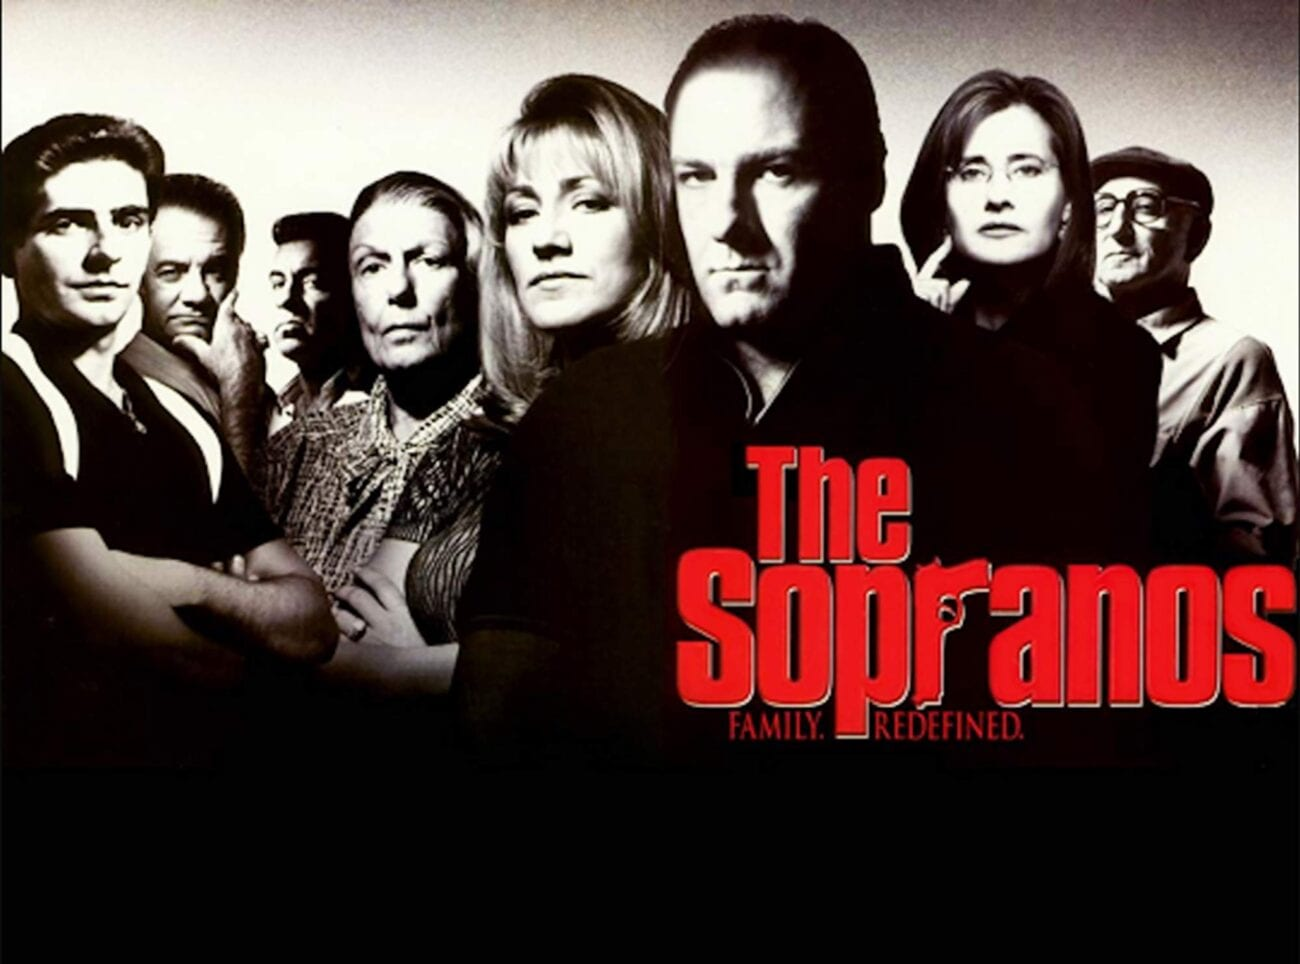 We deep dive into the actions of Tony on 'The Sopranos' in order to decide if he was a good guy or a bad guy. Get ready, there's a lot to unpack.